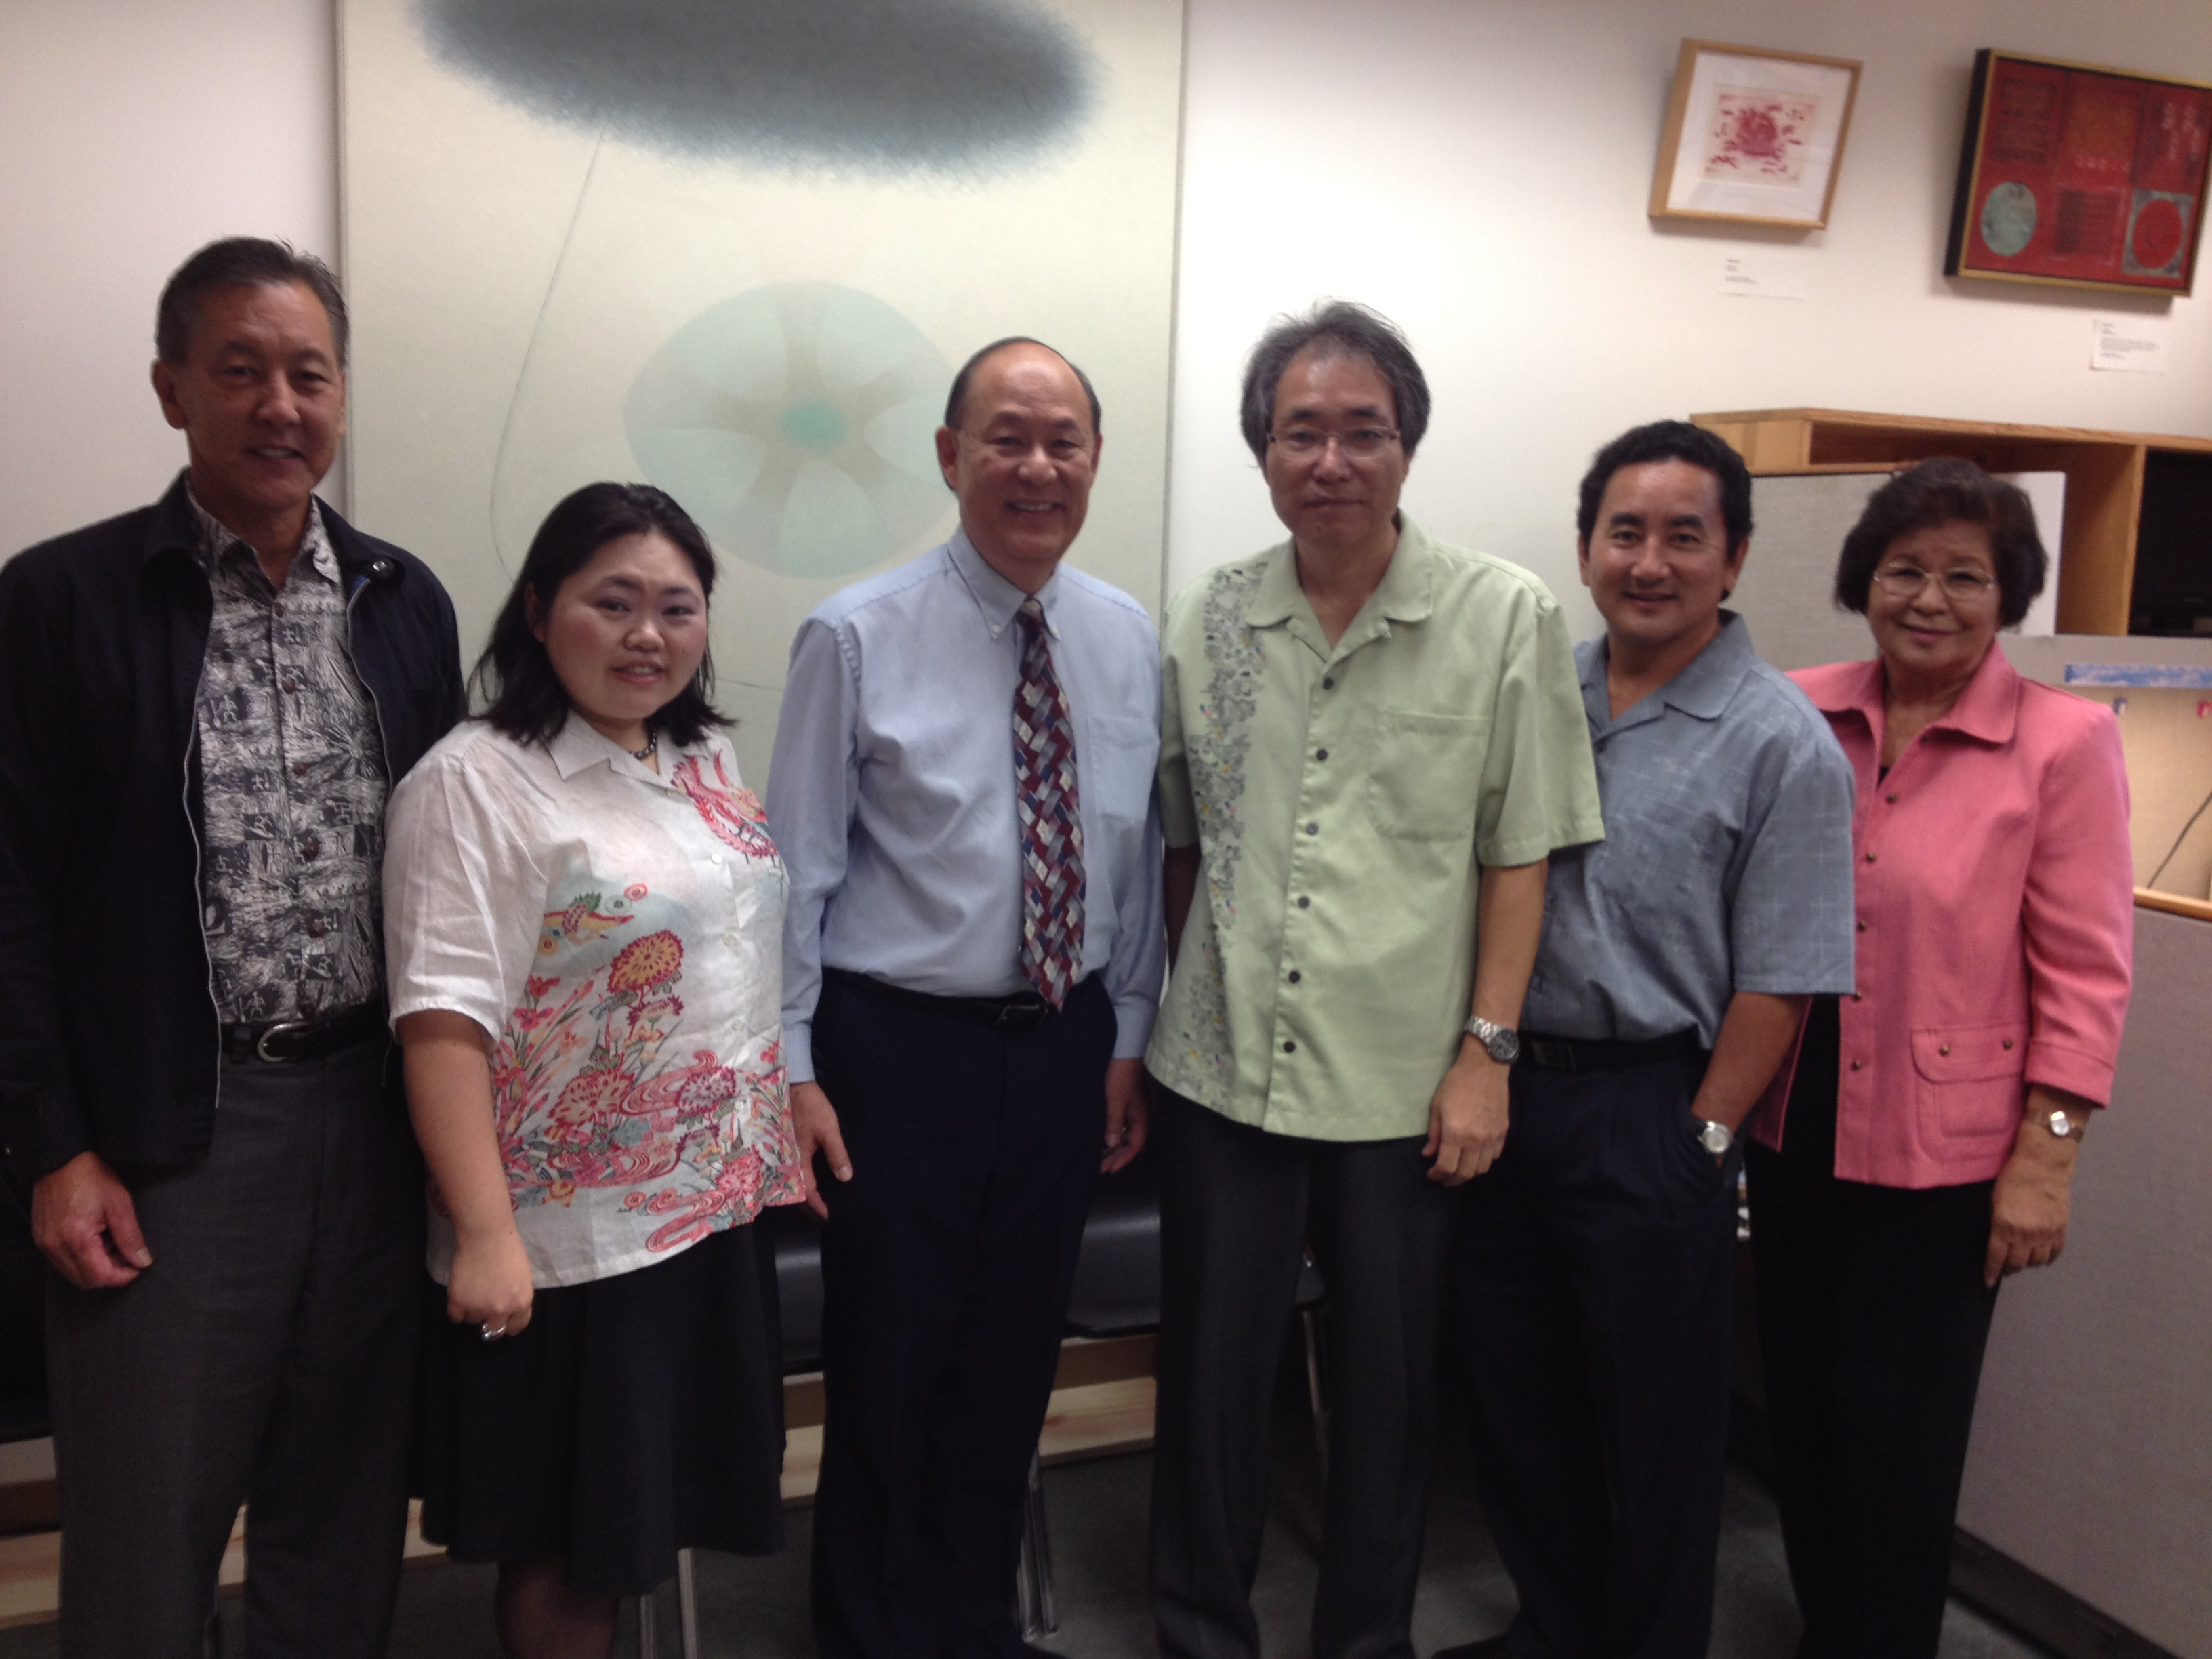 Hawaii Okinawa Association Officials